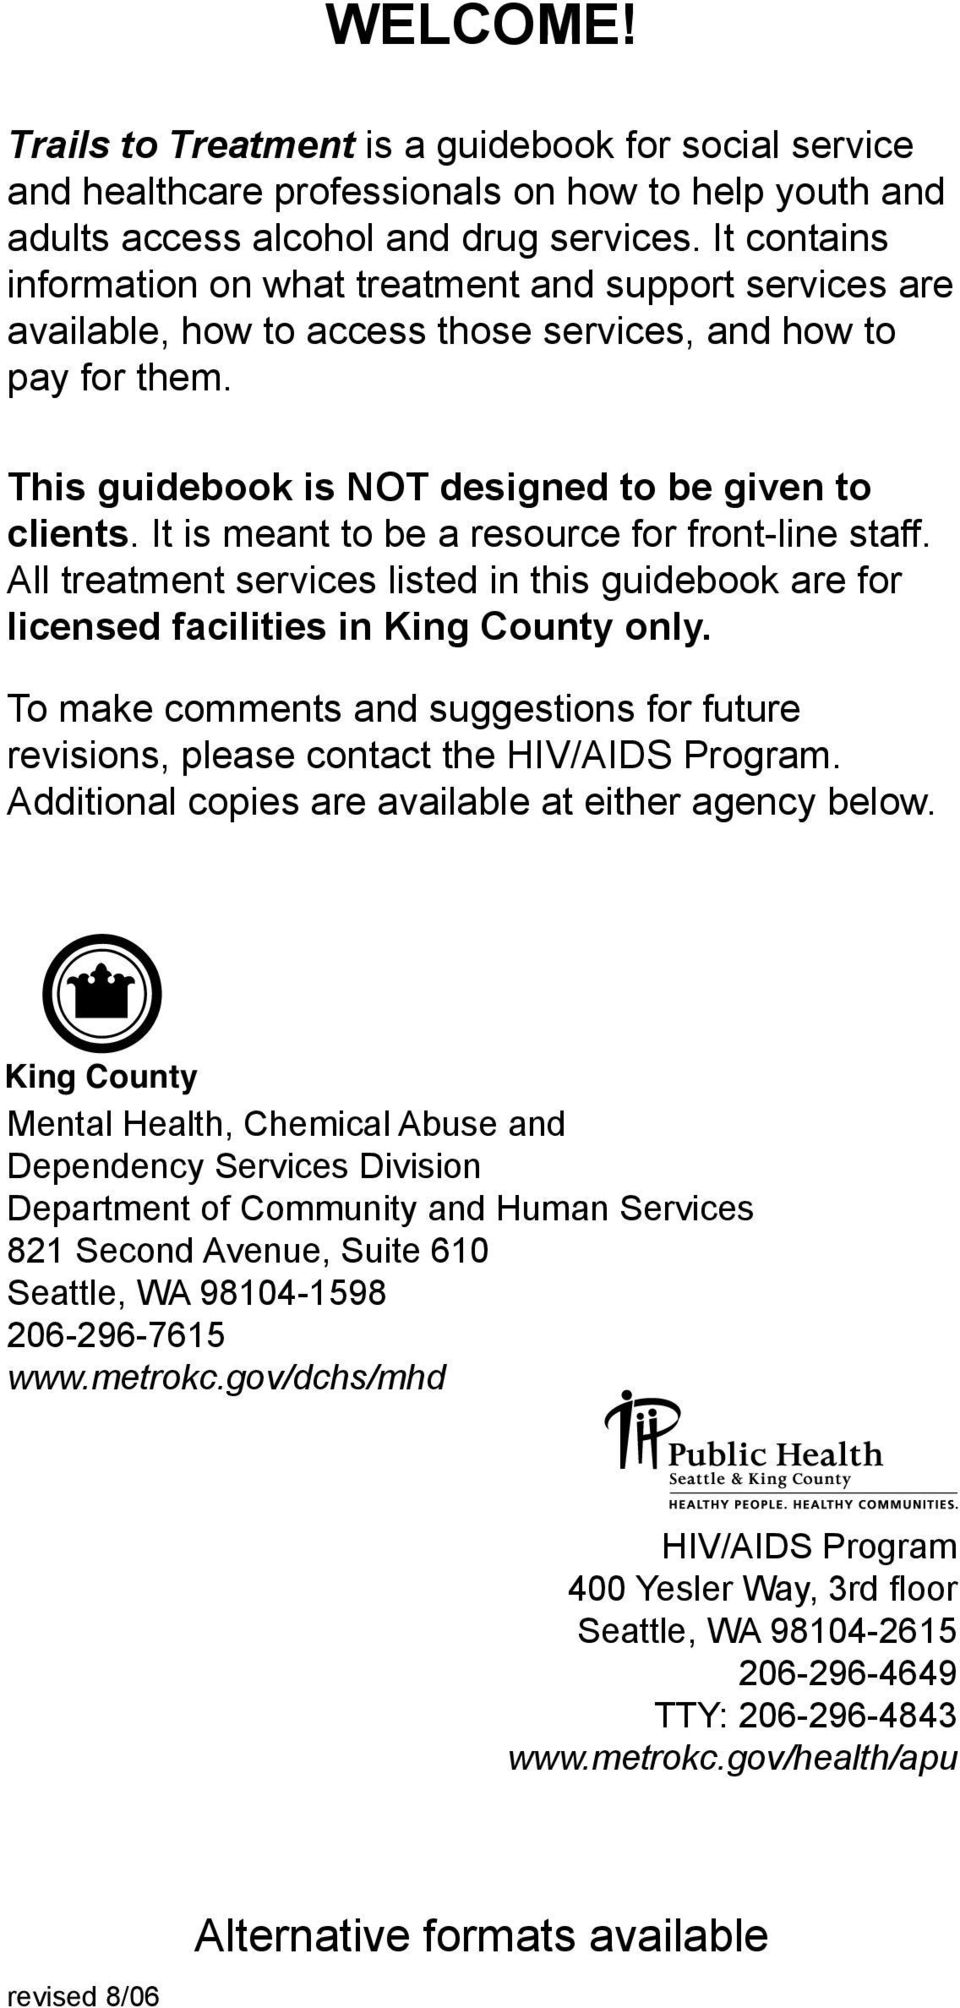 It is meant to be a resource for front-line staff. All treatment services listed in this guidebook are for licensed facilities in King County only.